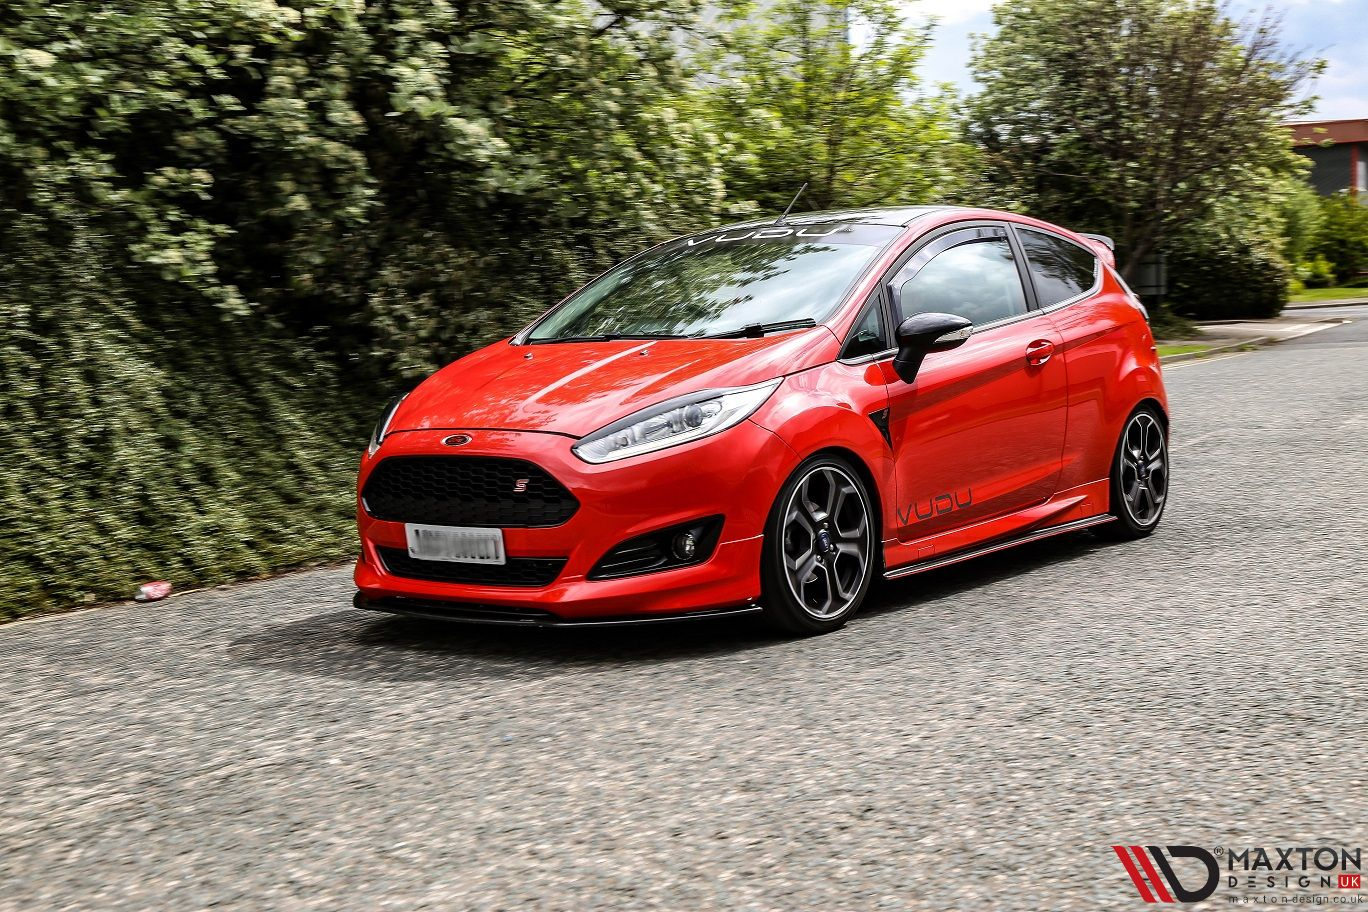 Ignore The Front Splitter Ours Is Much Better Dawson8502 Instagram Sporting Our Side Skirt Diffusers On His Zetec S Maxton Body Kit Ford Fiesta Ford